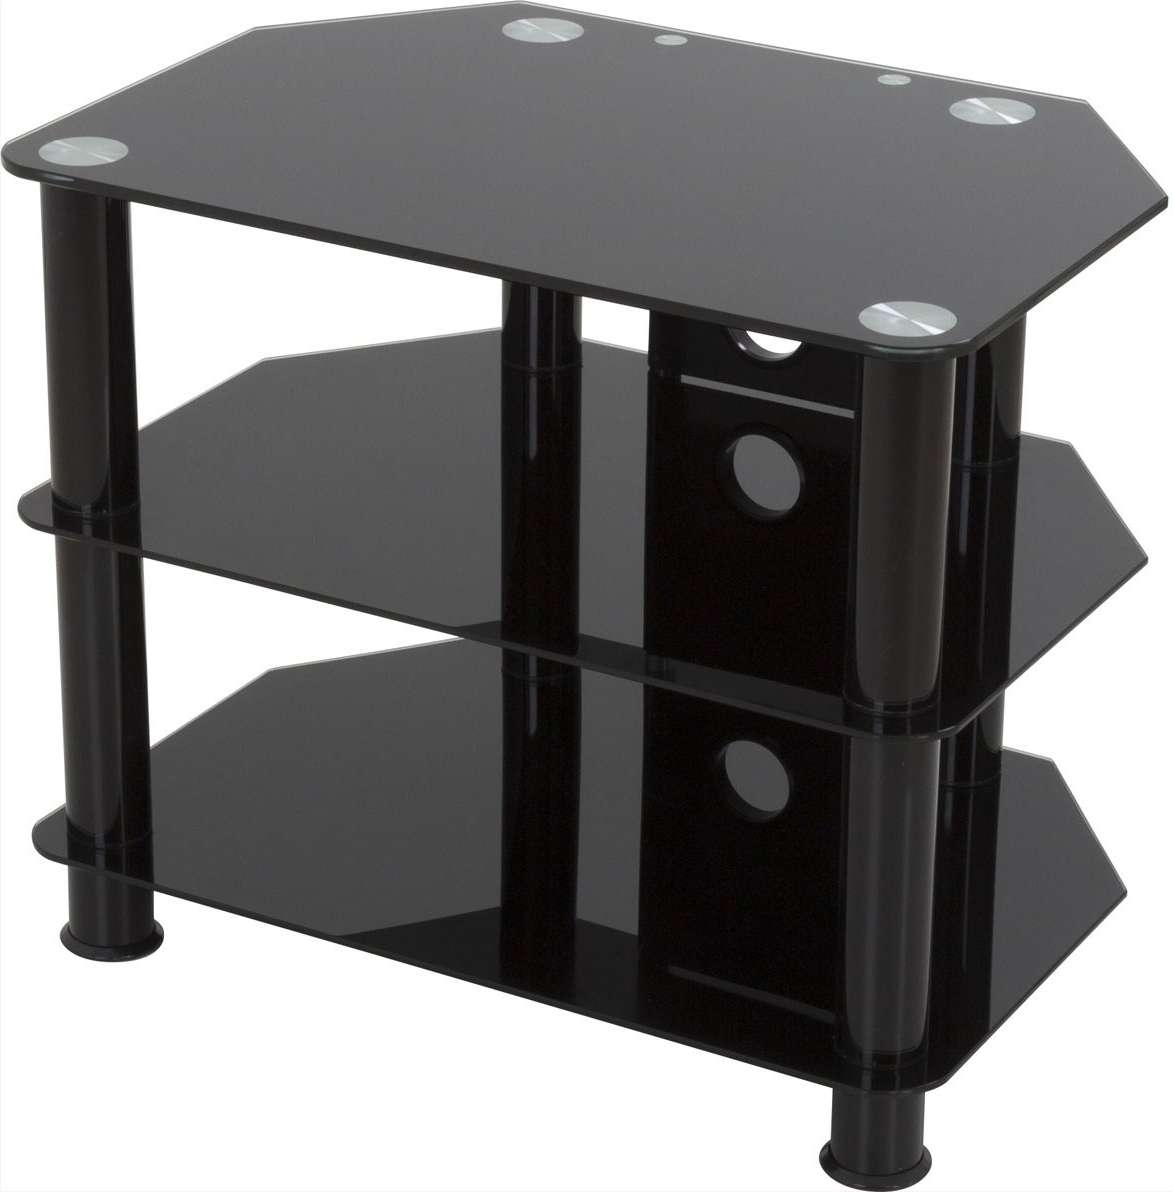 Avf Sdc600cmbb Tv Stands With Black Glass Tv Stands (View 15 of 15)